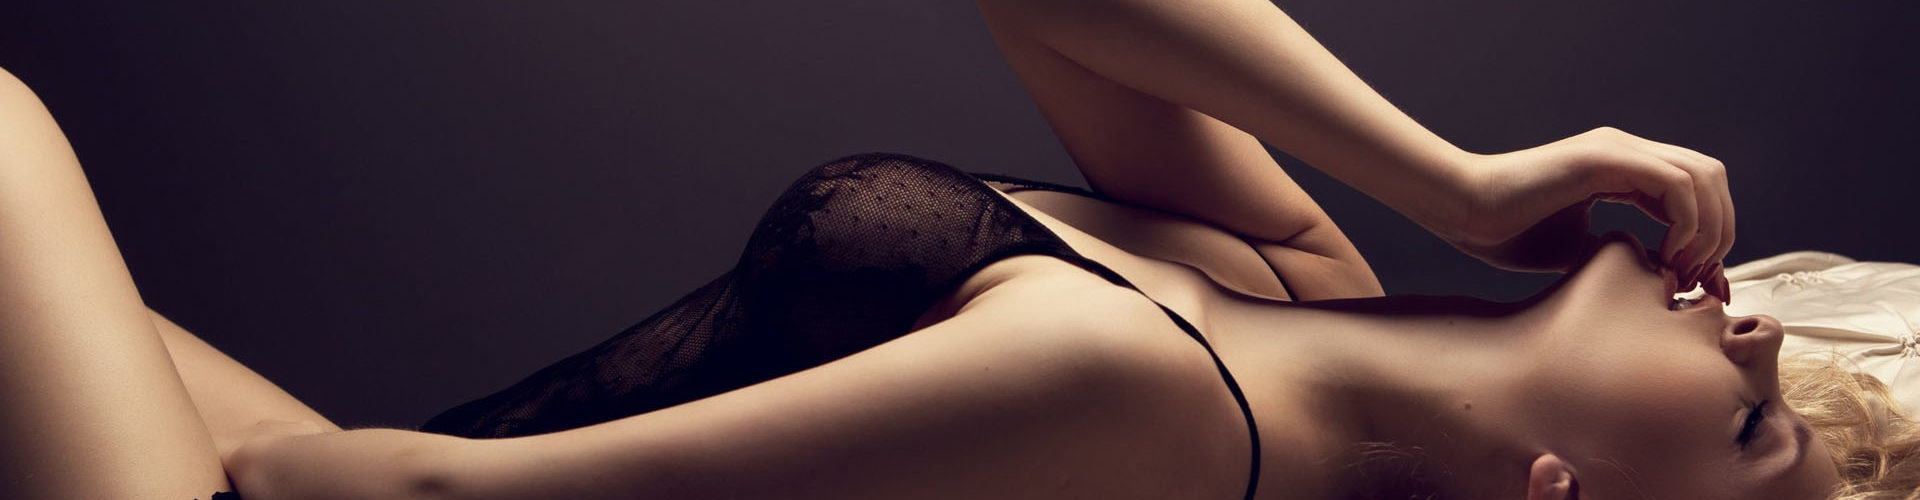 Lingerie Massage Melbourne